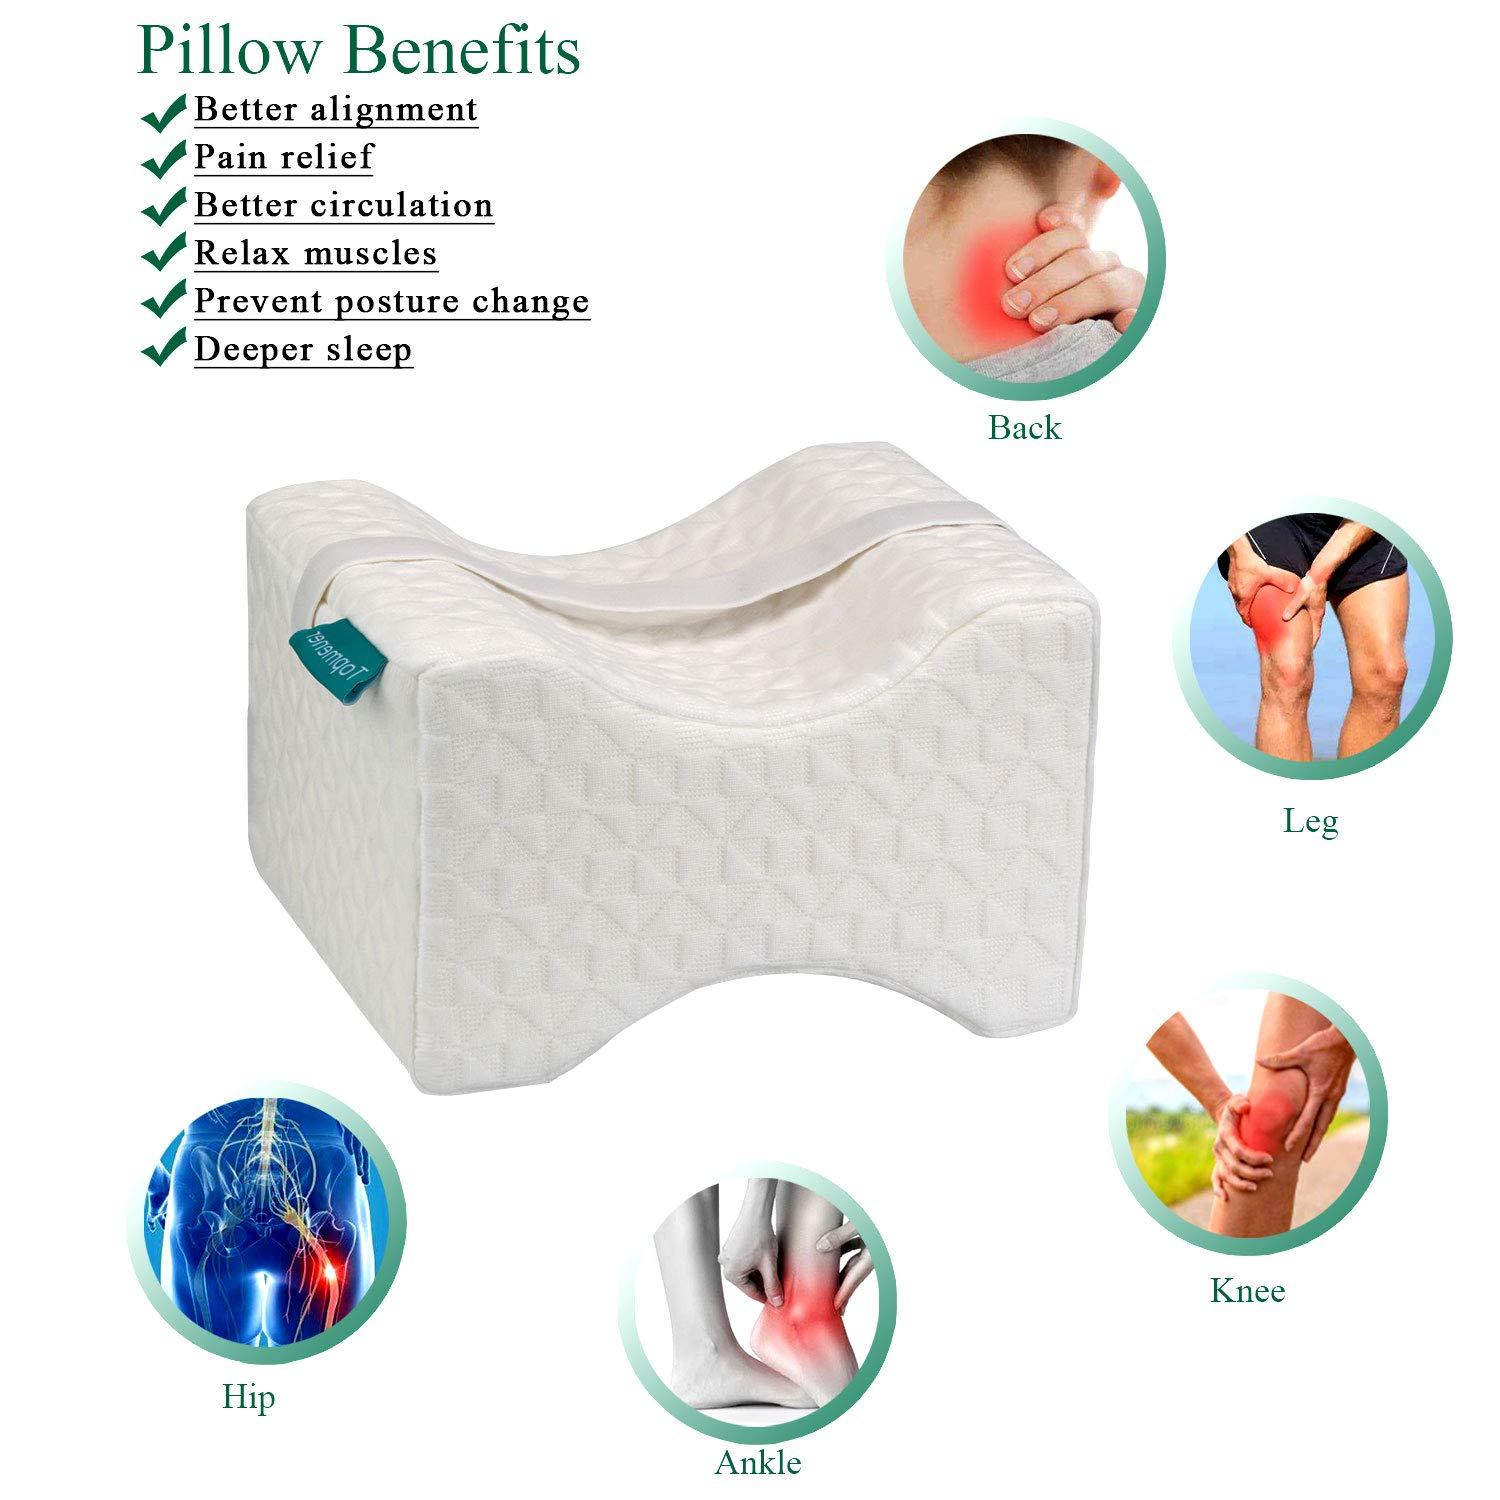 Pregnancy /& Sciatica Relief Topmener Knee pillow Memory Foam Leg Cushion Orthopedic Between Knee Wedge Pillow for Sleeping with Strap /& Washable Cover Perfect for Hip Leg /& Knee Pain Side Sleeper